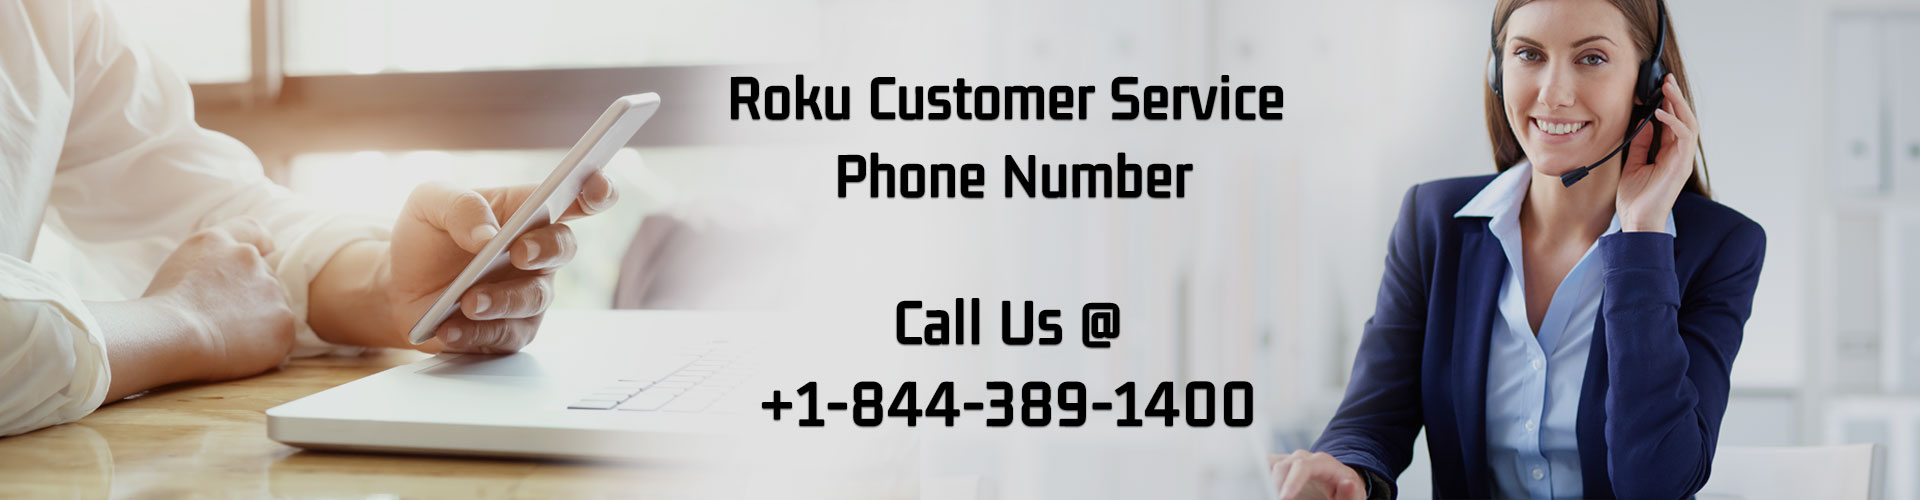 Contact Roku technical support team for assistance